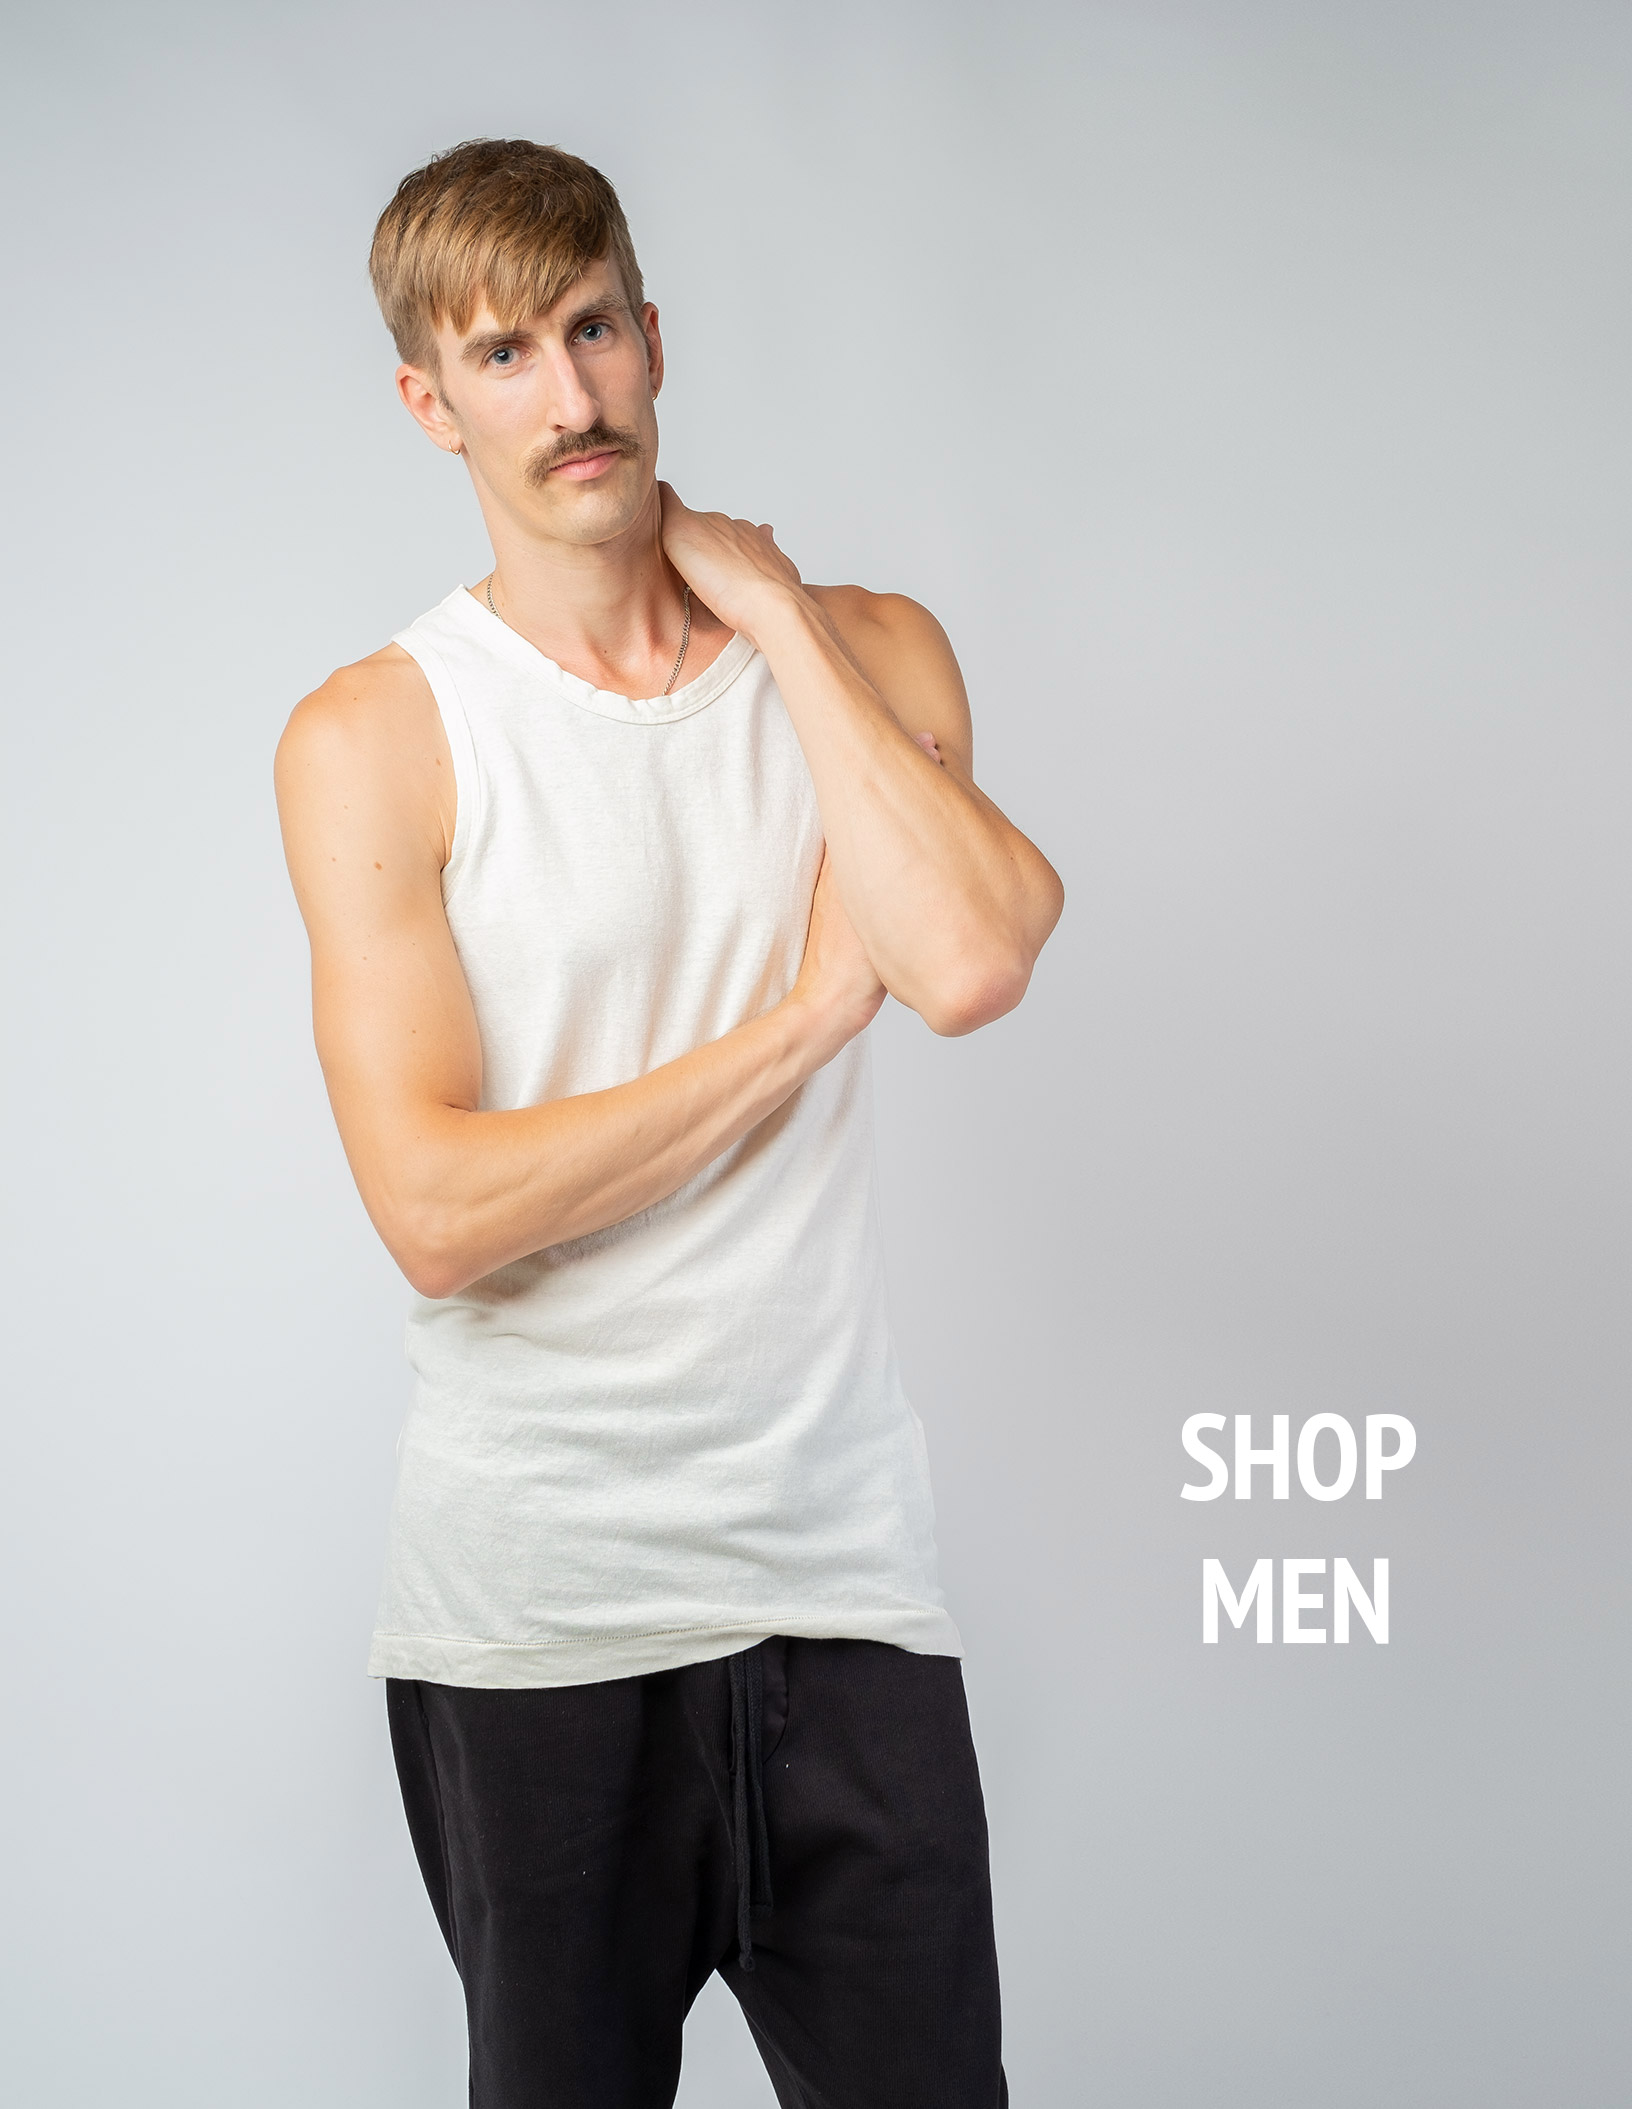 Shop mens hempje collection text